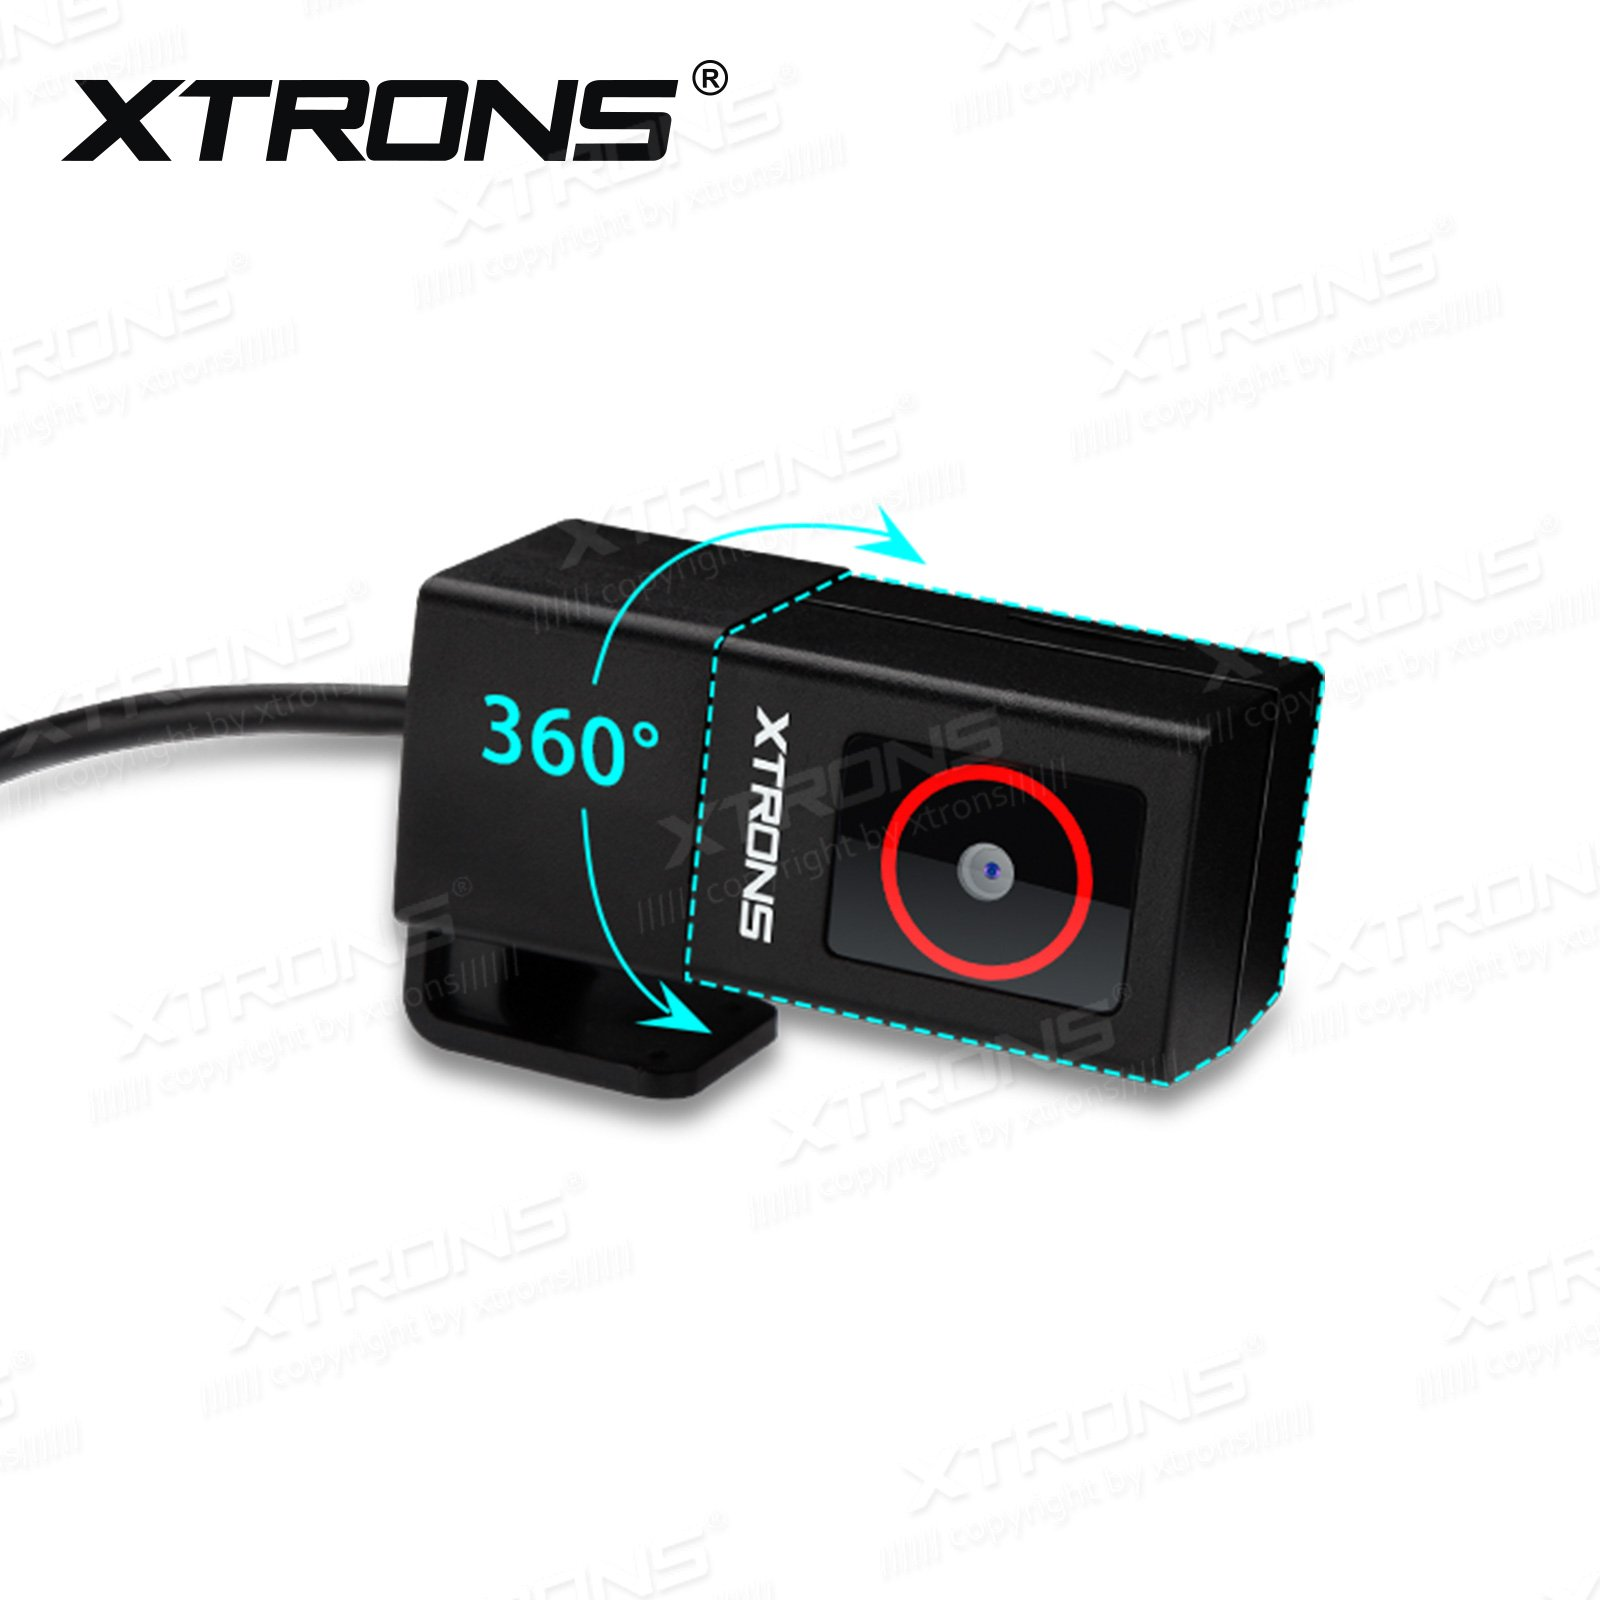 XTRONS 360° Rotatable Lens Car DVR Dash USB Mini Recorder Night Vision